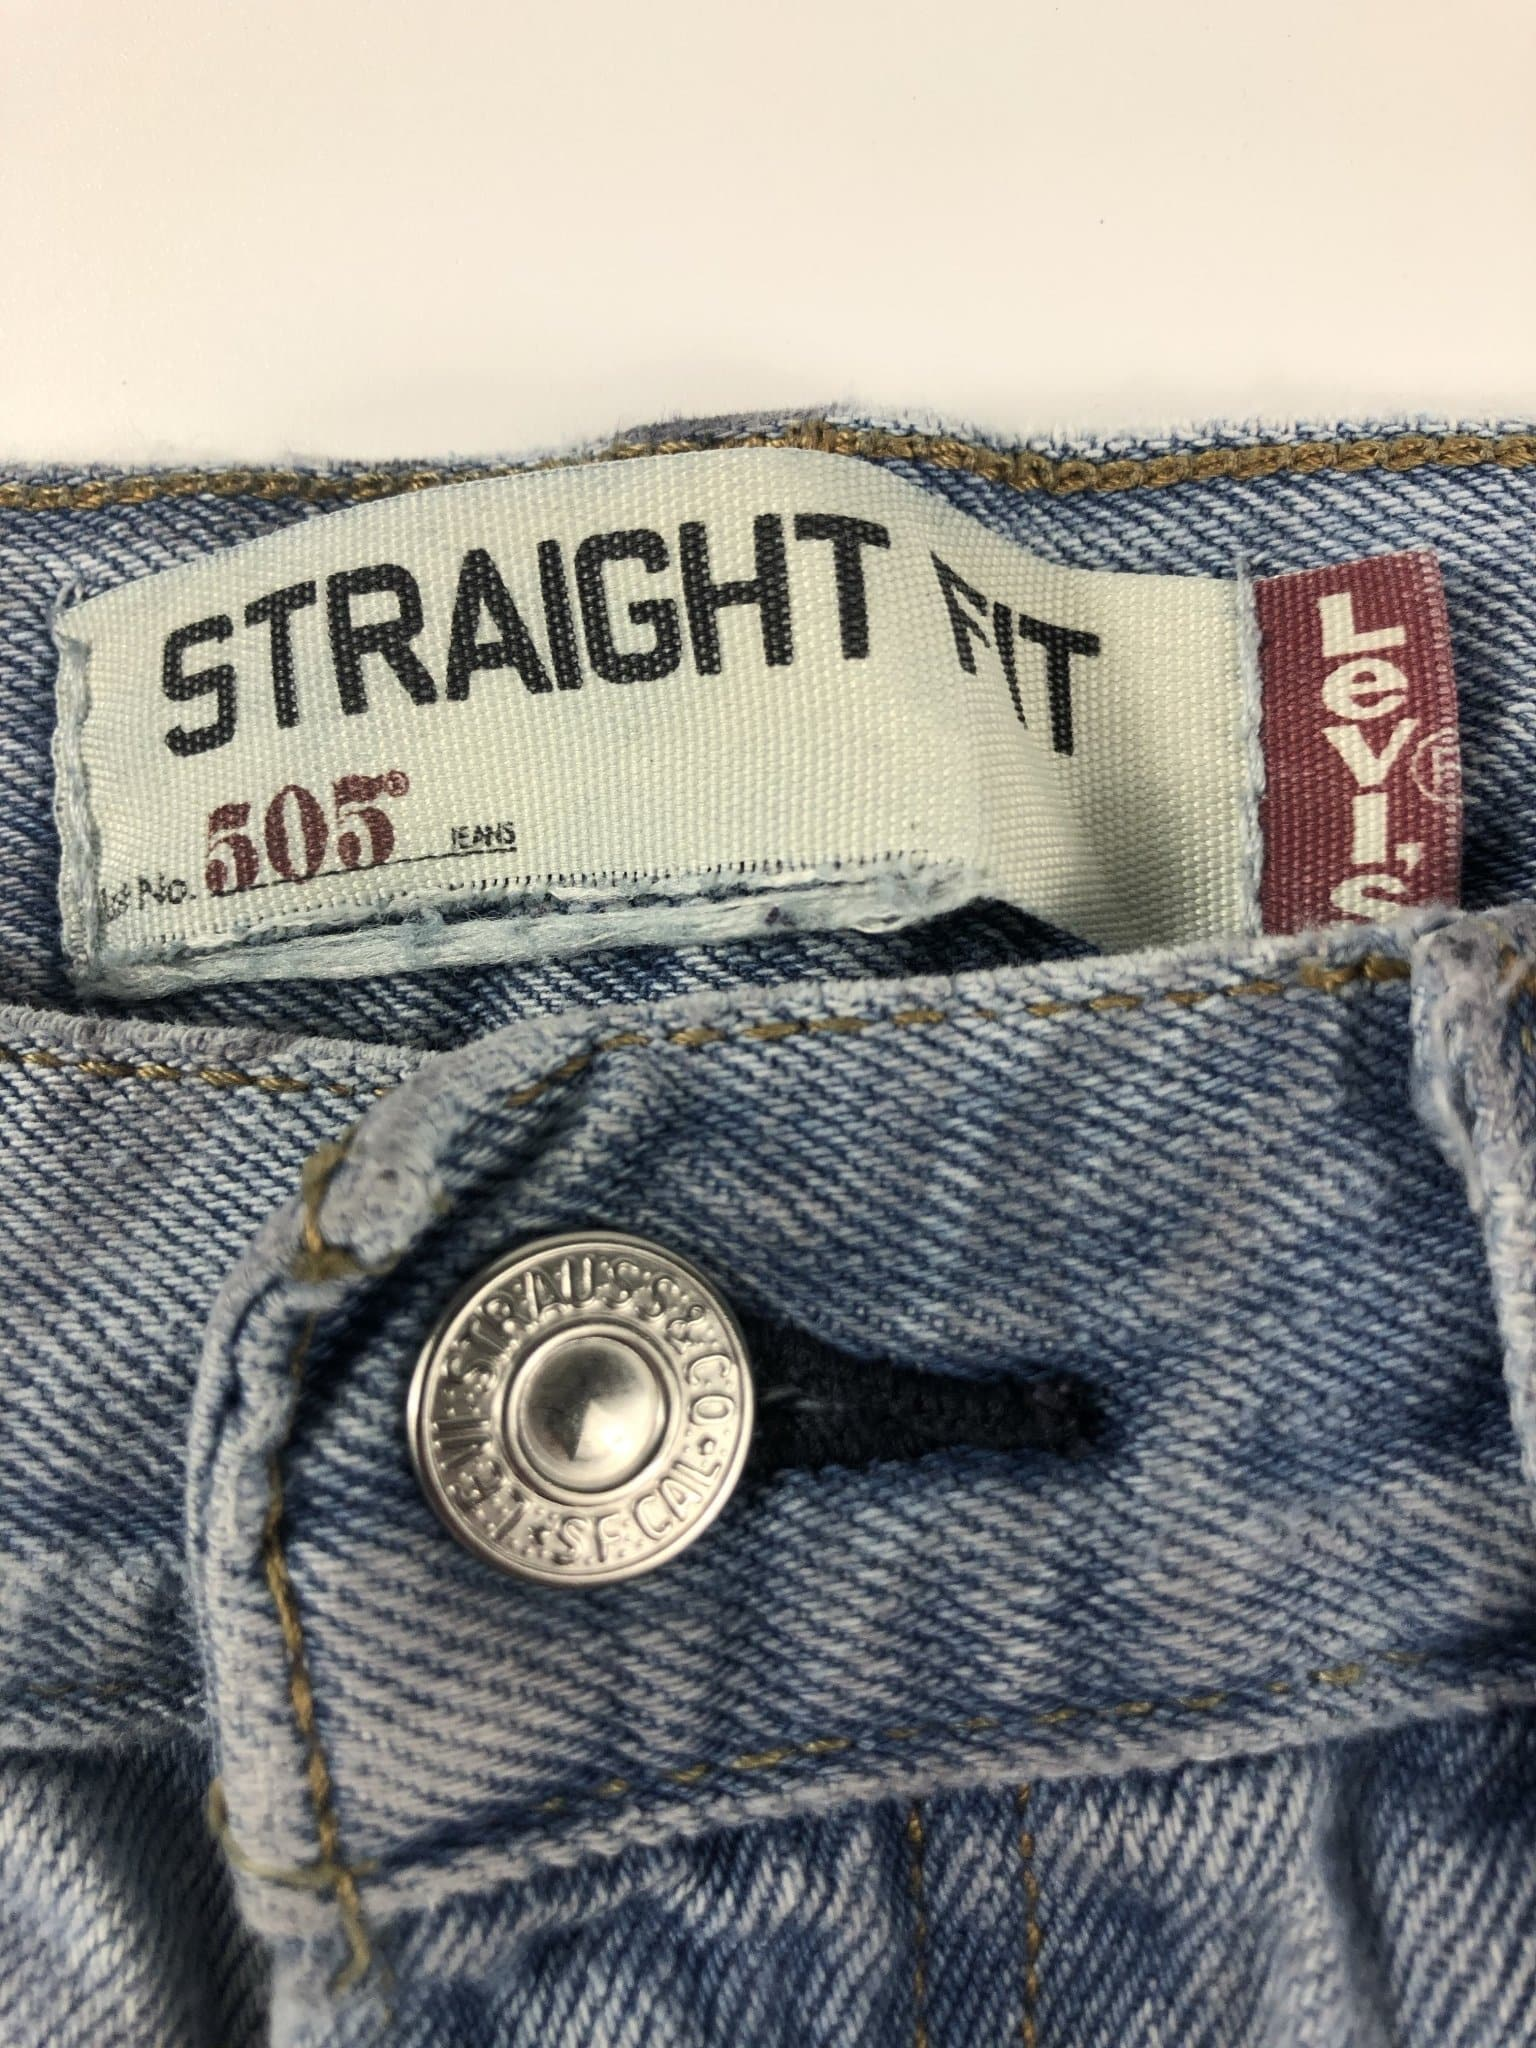 Vintage Levi's Classic 505 Jeans W32 L30 (I11) - Discounted Deals UK